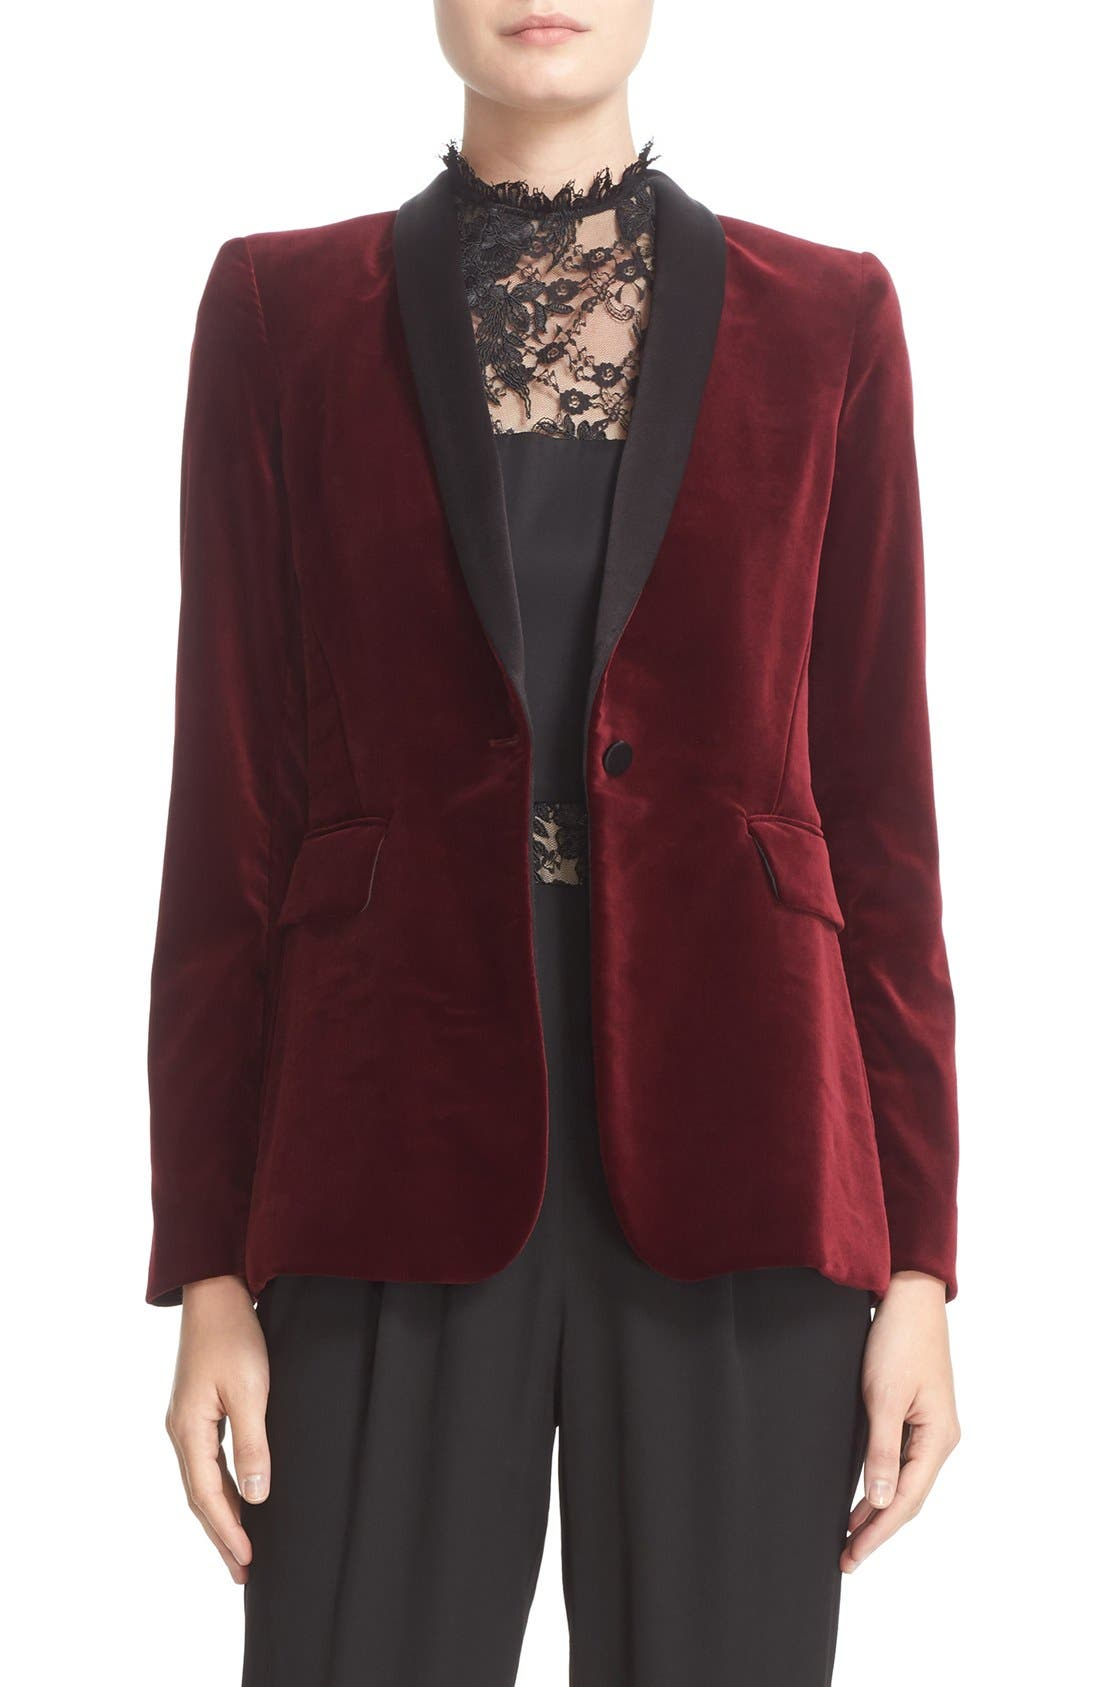 'Macey' Satin Lapel Velvet One-Button Blazer,                             Main thumbnail 1, color,                             Bordeaux/ Black